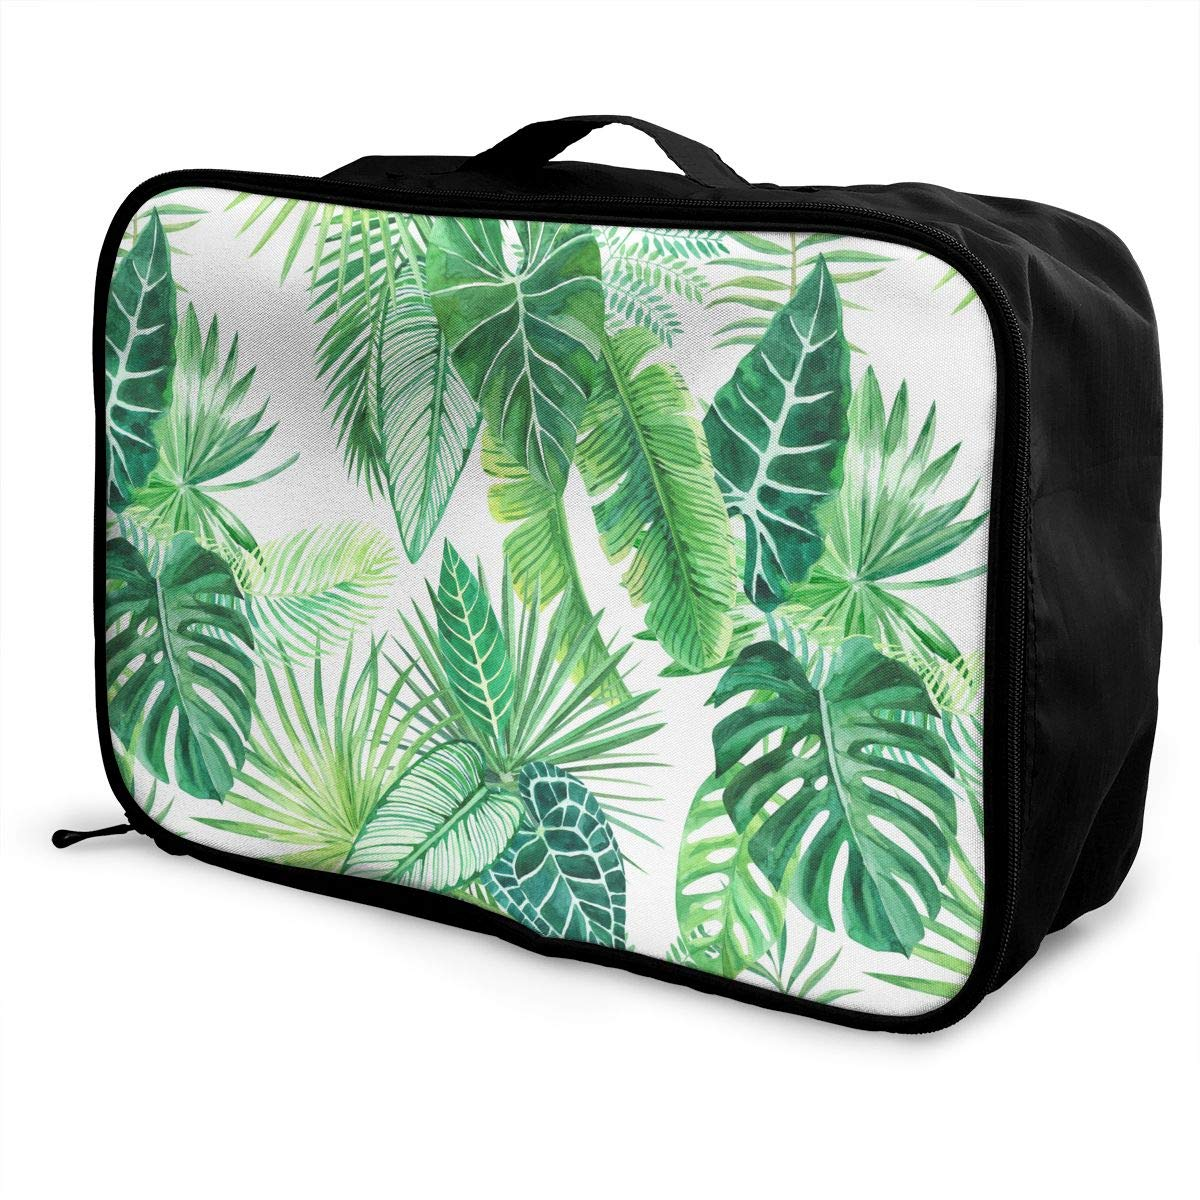 Travel Fashion Lightweight Large Capacity Duffel Portable Waterproof Foldable Storage Carry Luggage Tote Bag Watercolor Palm Leaf